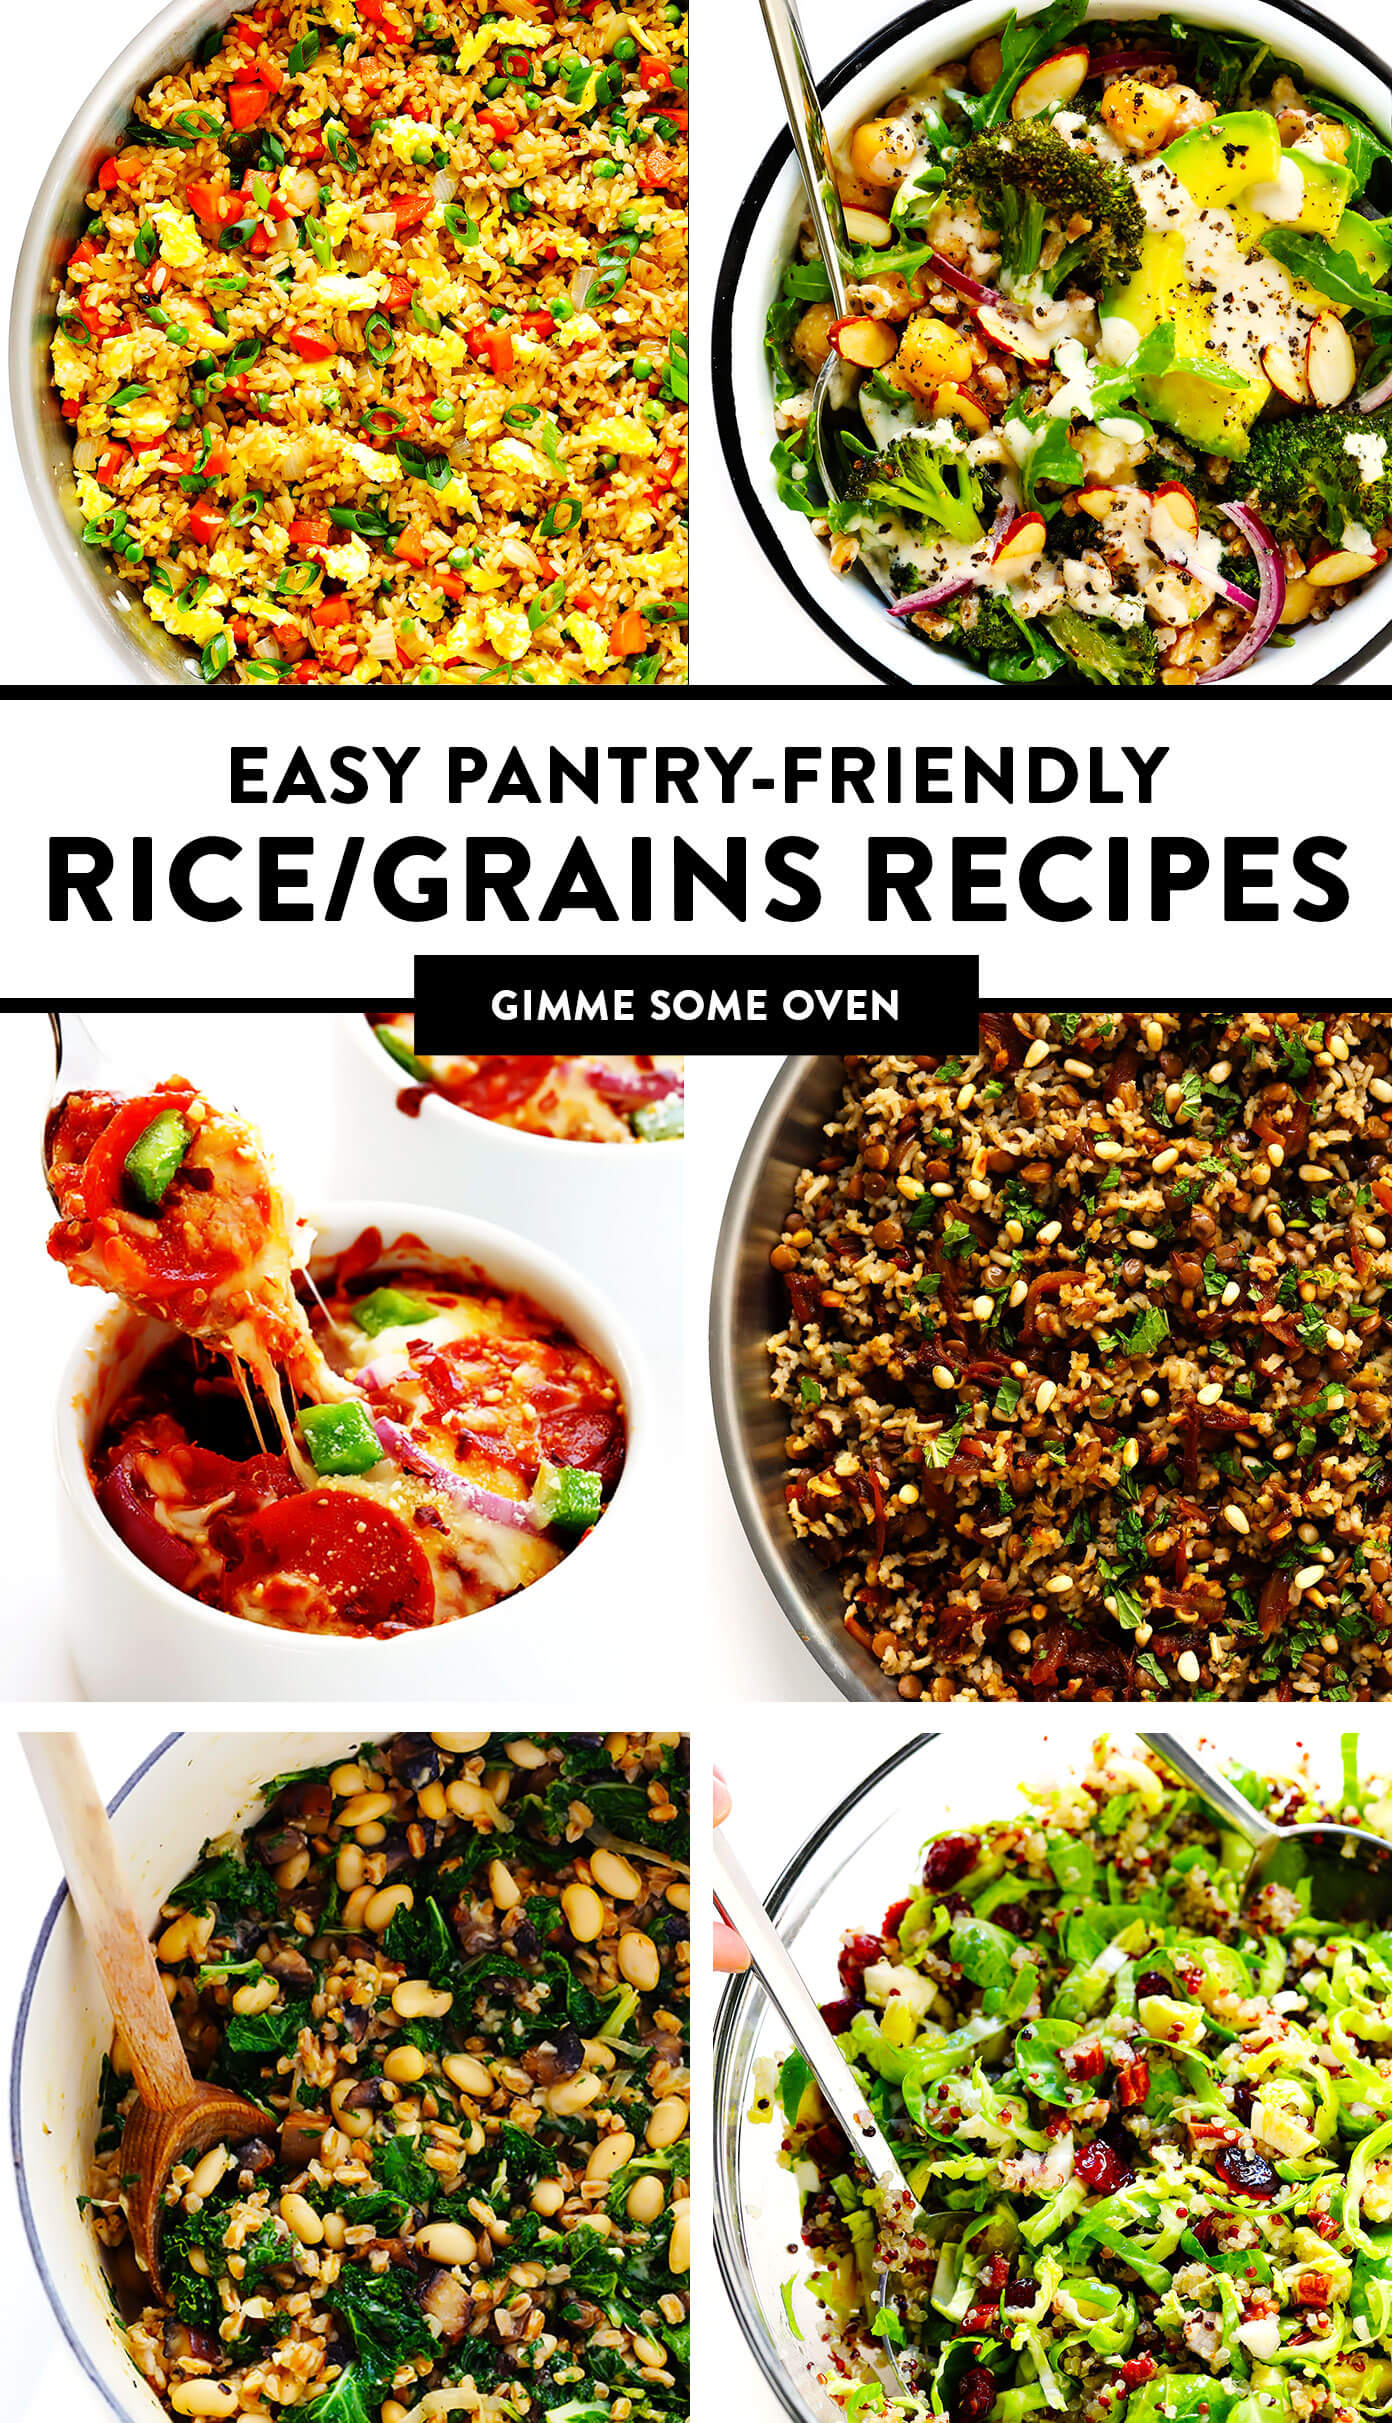 Easy Pantry-Friendly Rice, Grains and Quinoa Recipes